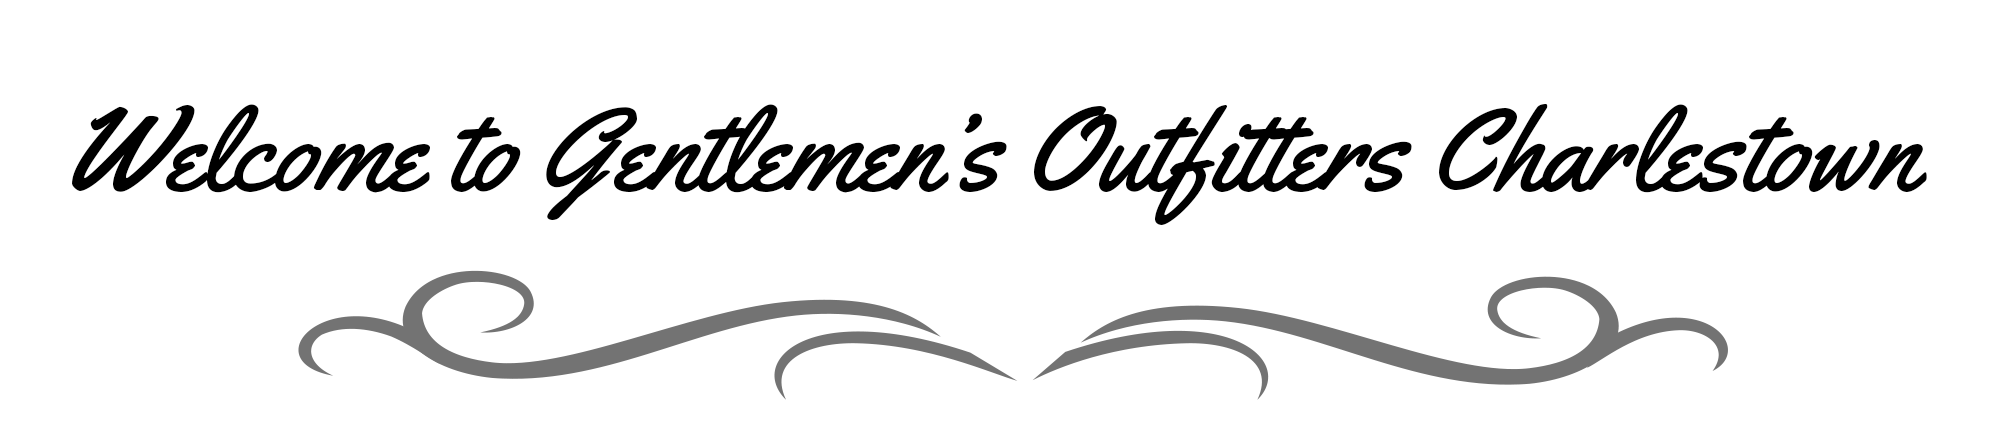 welcome to Gentlemen's Outfitters Charlestown